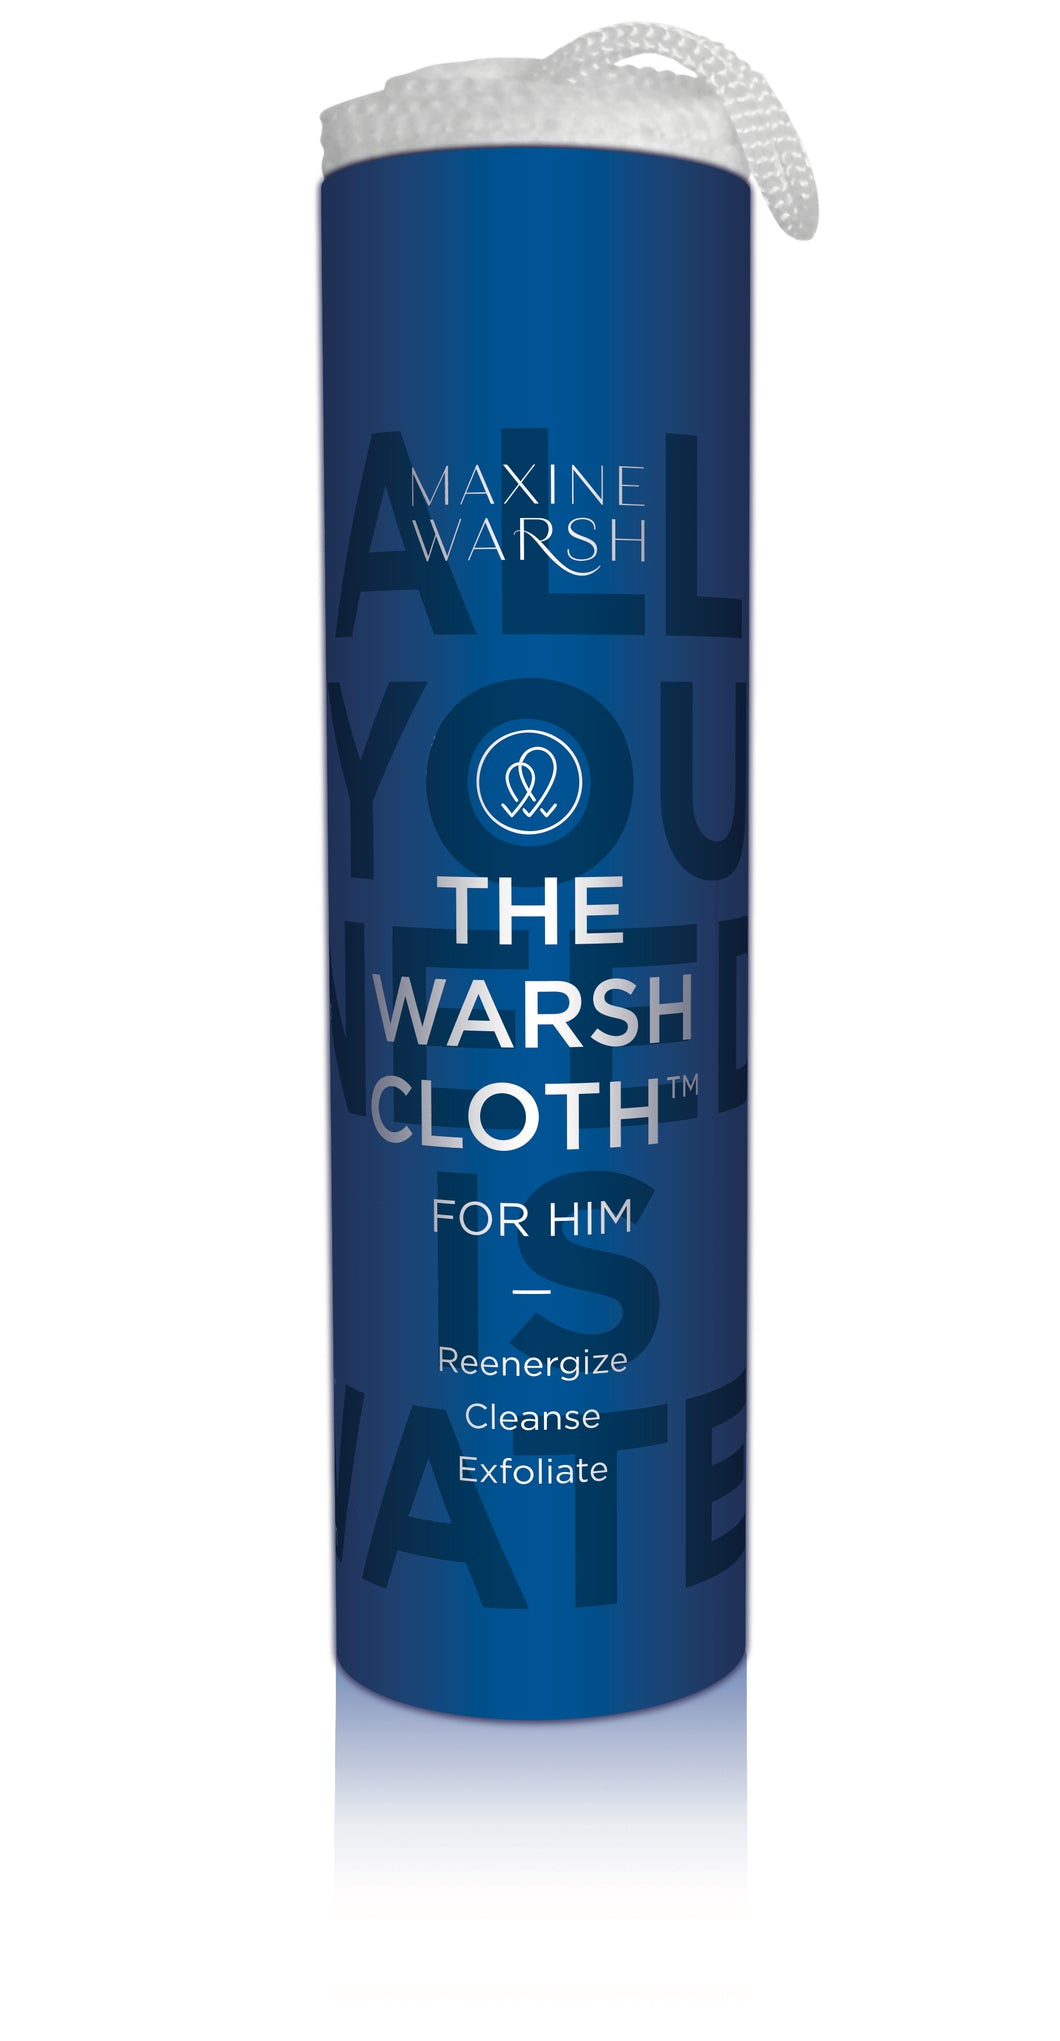 Reenergize for Him - Warsh Cloth for Him